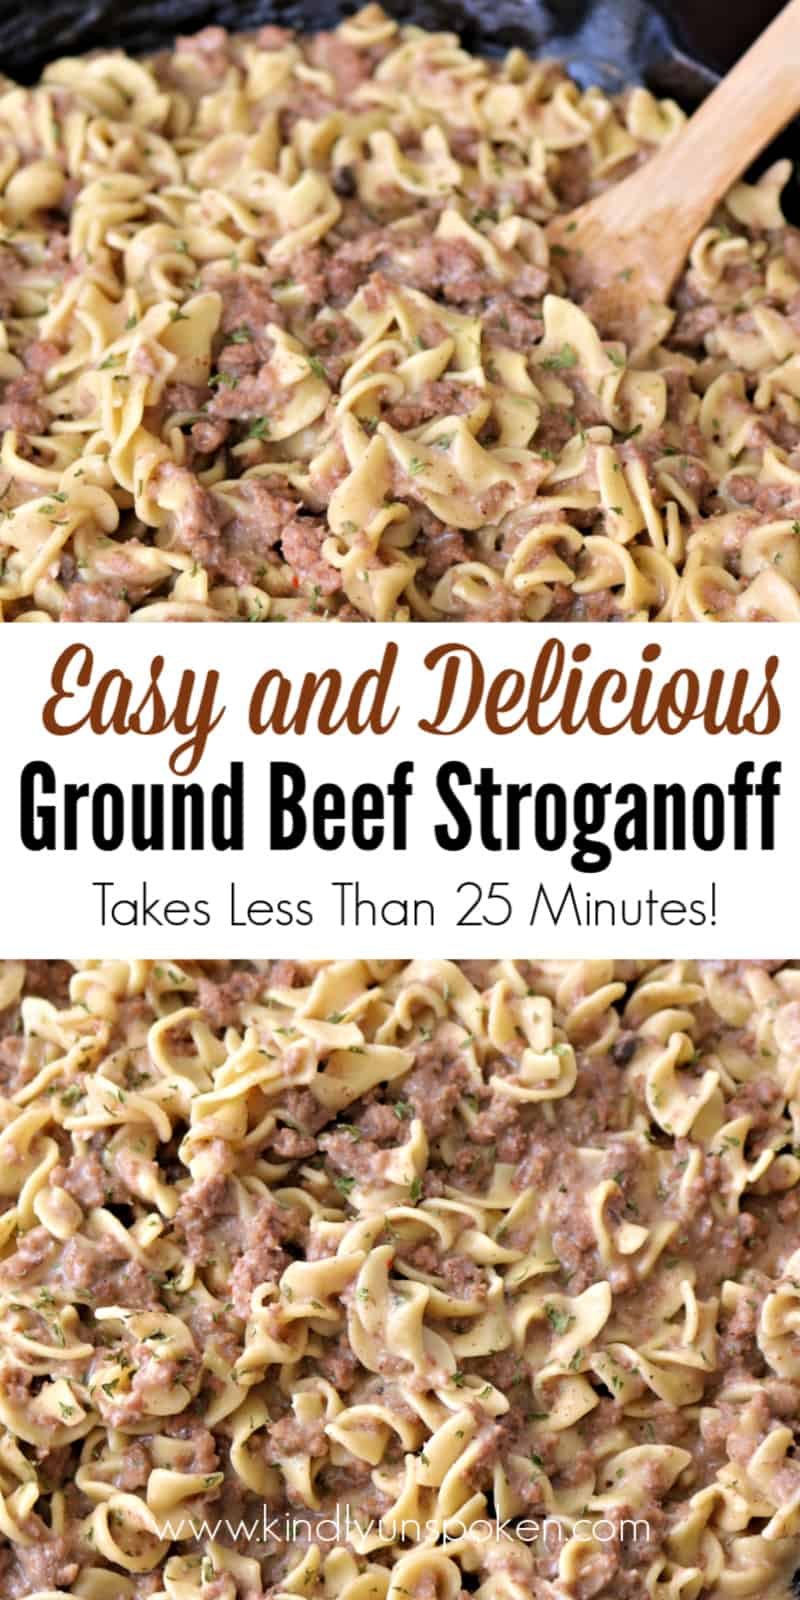 Make this Delicious, Creamy, and Easy Ground Beef Stroganoff for dinner in under 30 minutes with light sour cream, cream of mushroom soup, beef broth, lean ground beef, and egg noodles. It's so good you'll want to double the recipe! #groundbeefstroganoff #beefstroganoff #groundbeefrecipes #easydinnerrecipe